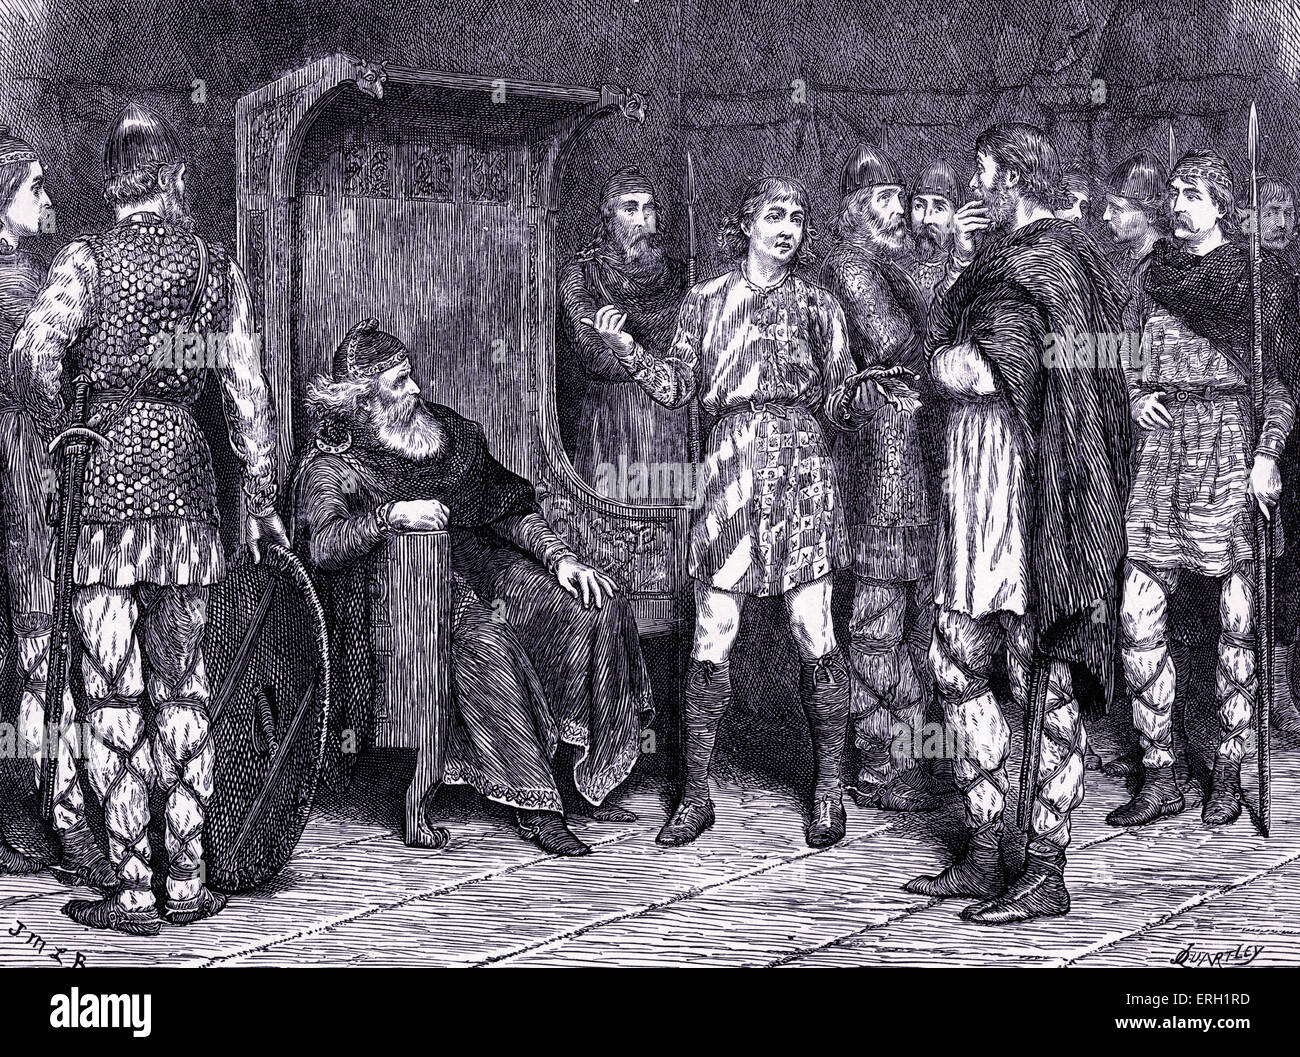 king lear modern act 4 scene Free summary and analysis of act 4, scene 1 in william shakespeare's king lear that won't make you snore we promise.